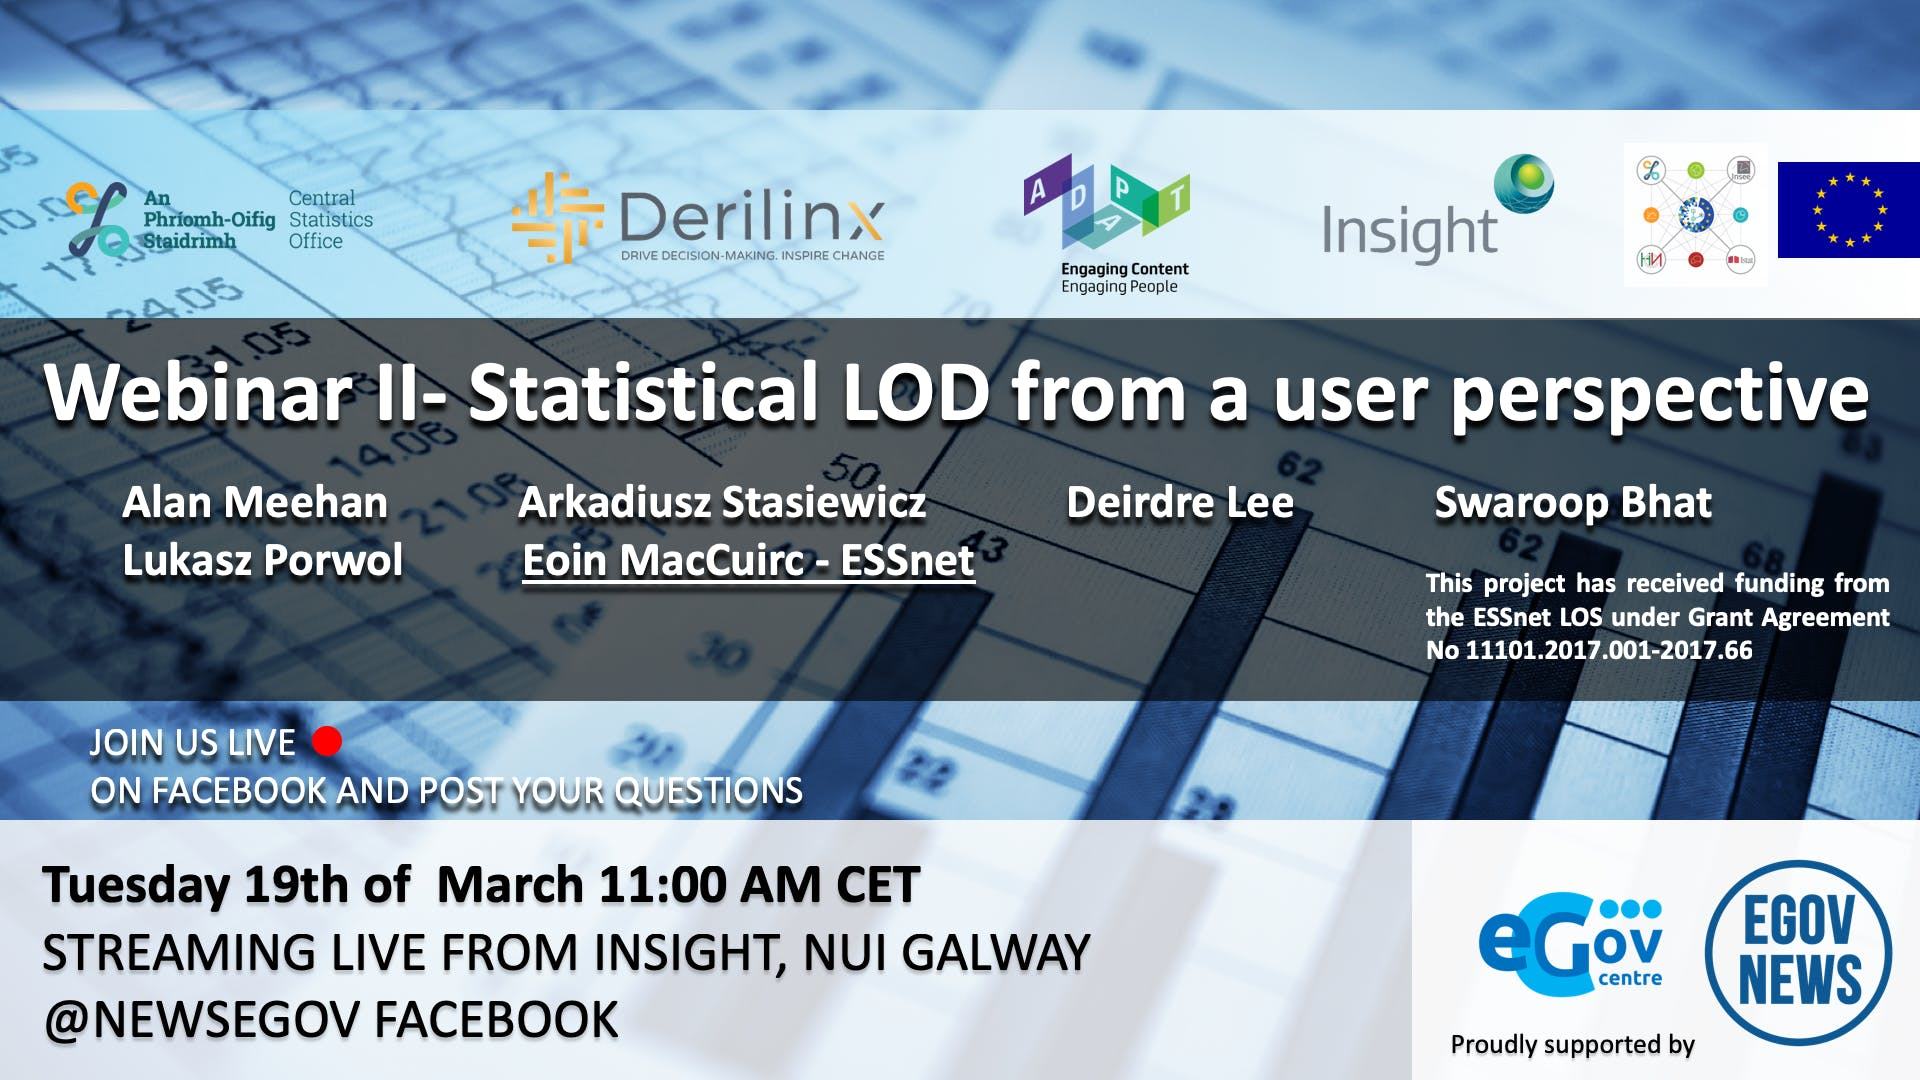 LOSD Webinar II - Statistical LOD from a user perspective